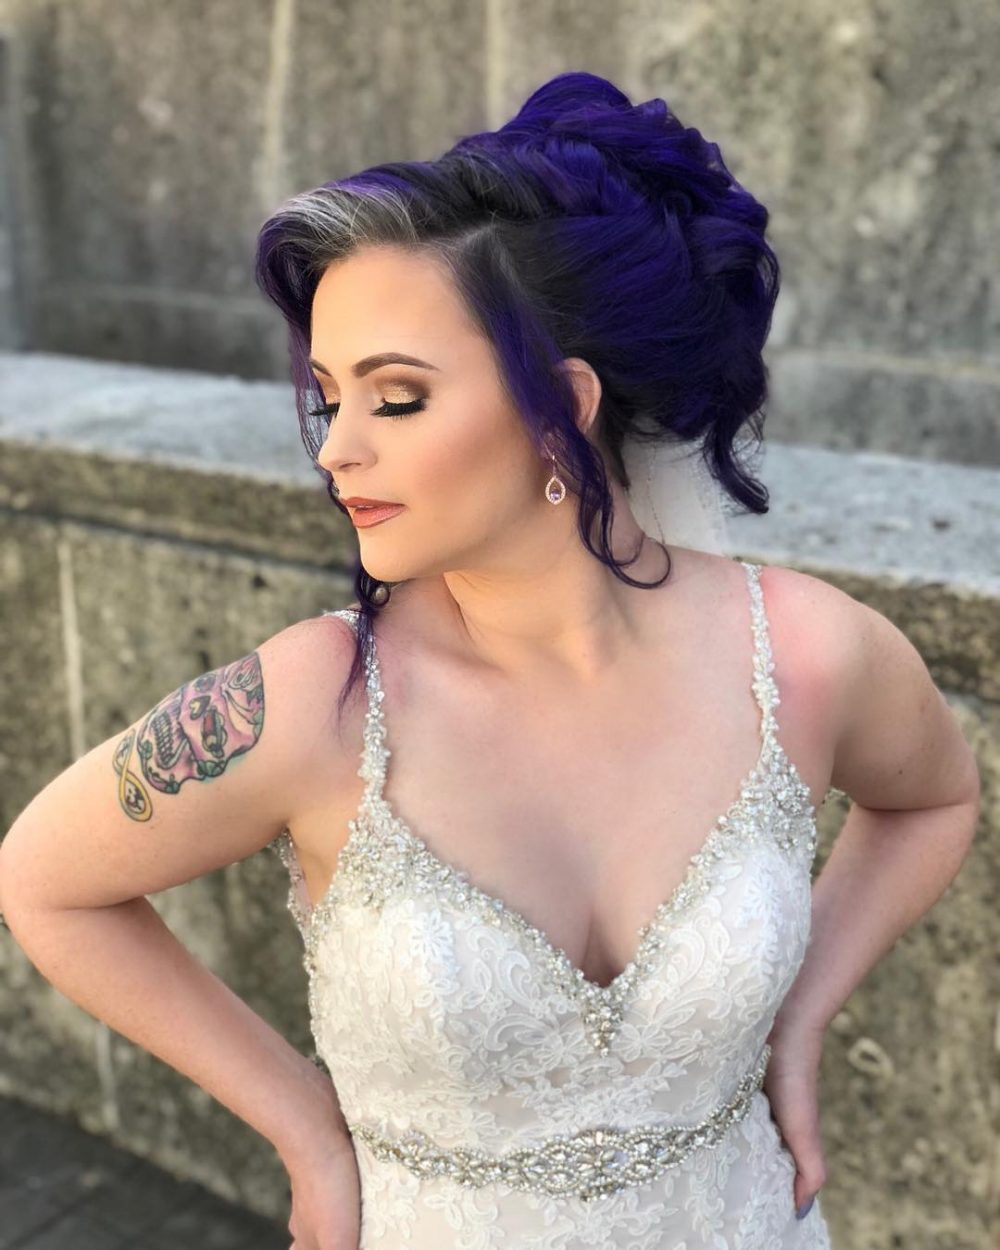 Wedding Hairstyles Instagram: 27 Gorgeous Wedding Hairstyles For Long Hair For 2020